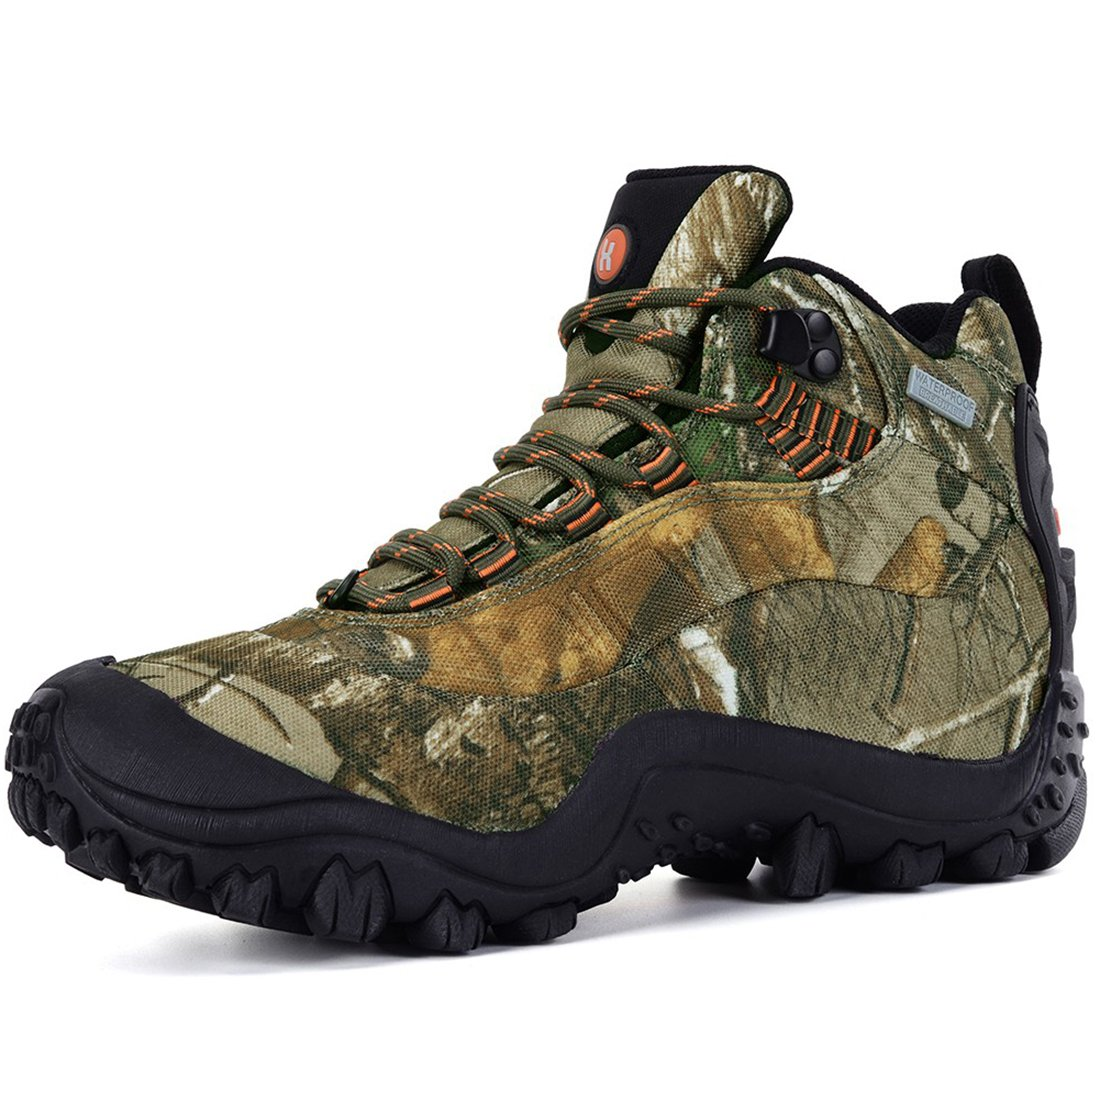 XPETI Women's Thermador Mid Waterproof Hiking Hunting Trail Outdoor Boot Camouflage 7.5